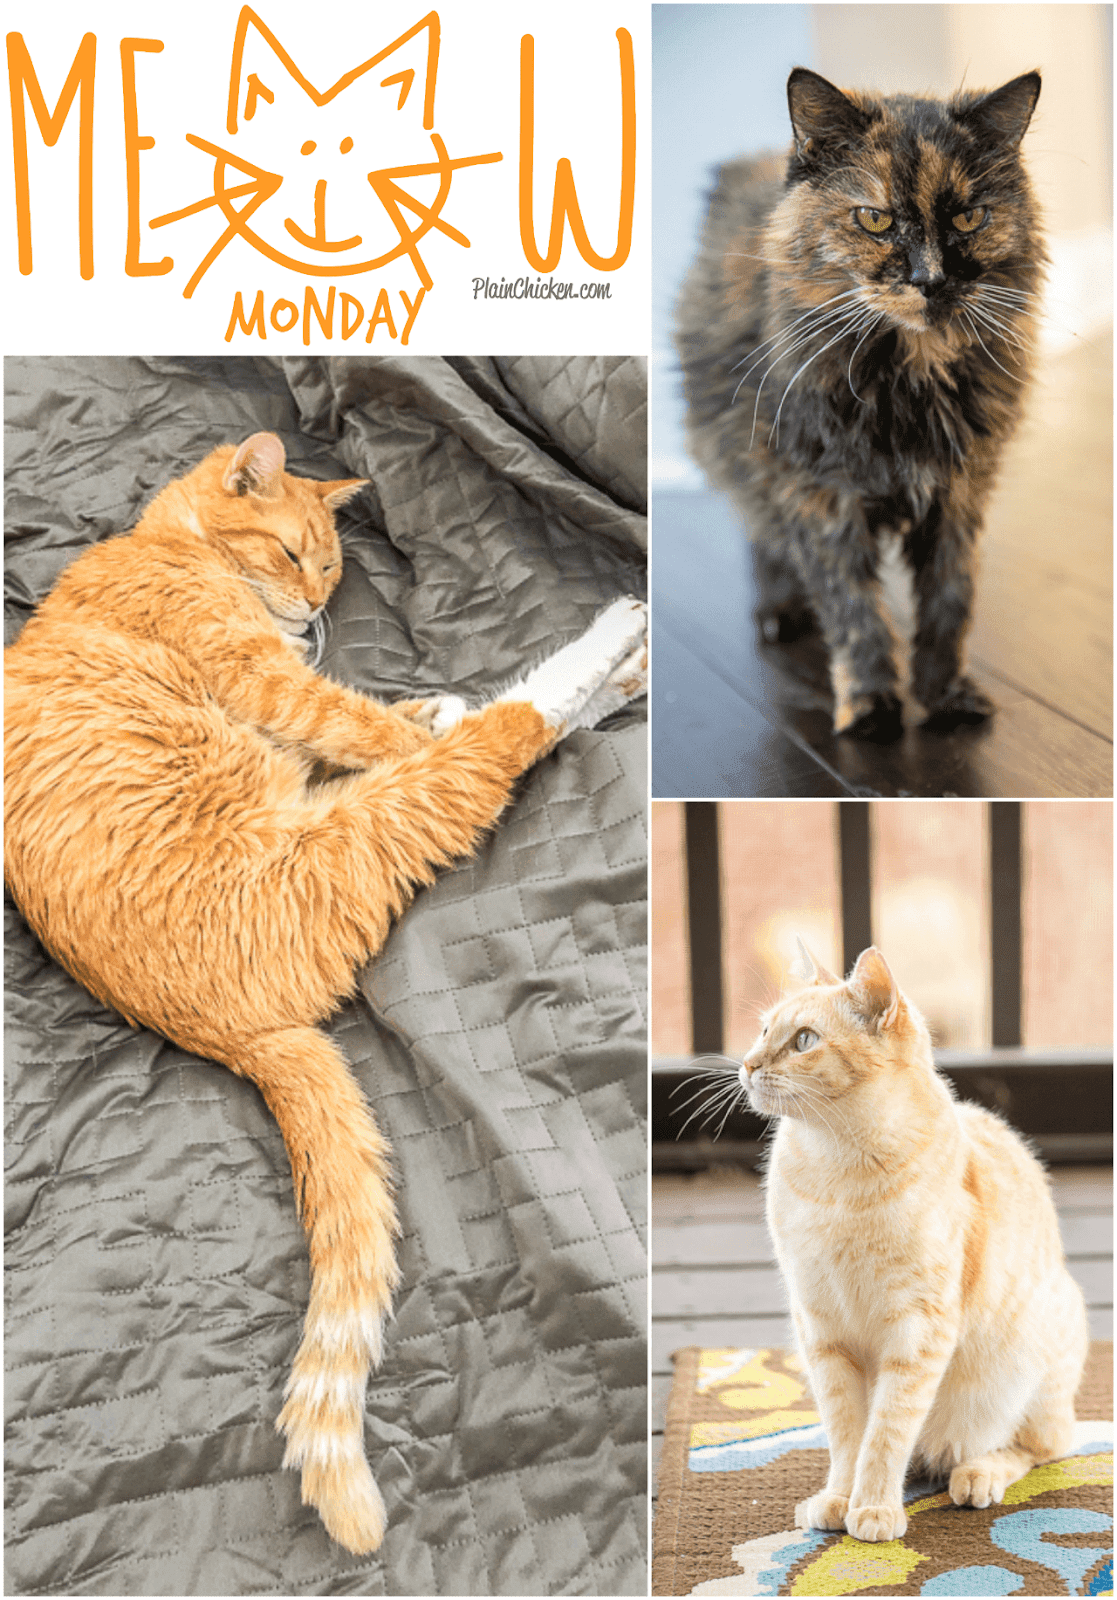 Meow Monday - cute cat pictures to start off your week! It's the best thing about Monday!! Come see what Jack, Squeaky and Nacho Man Kitty Savage have been up to!